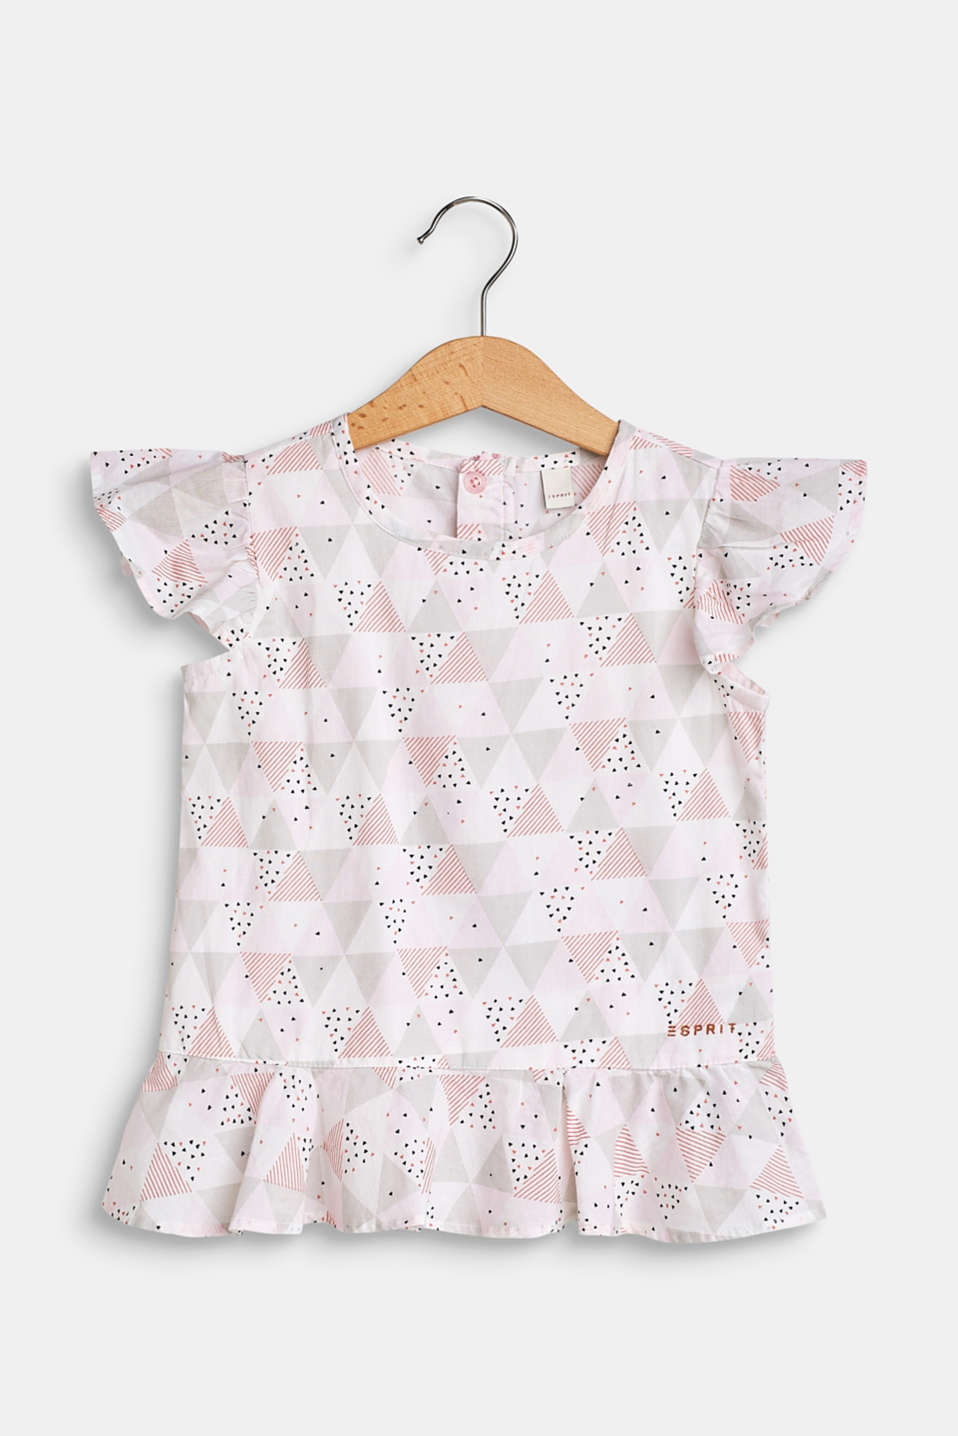 Esprit - Printed blouse top made of 100% cotton